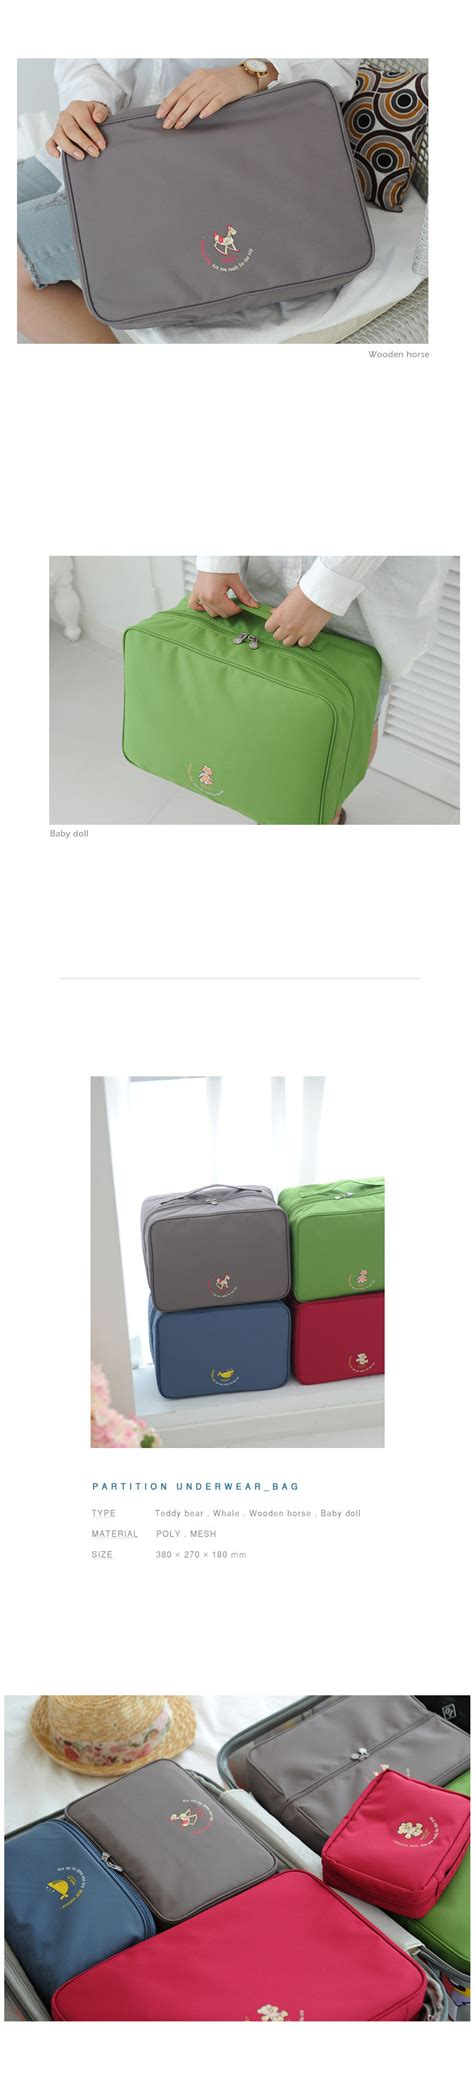 funnymade korea premium waterproof partition trunk bags travel luggage organizer sets baby